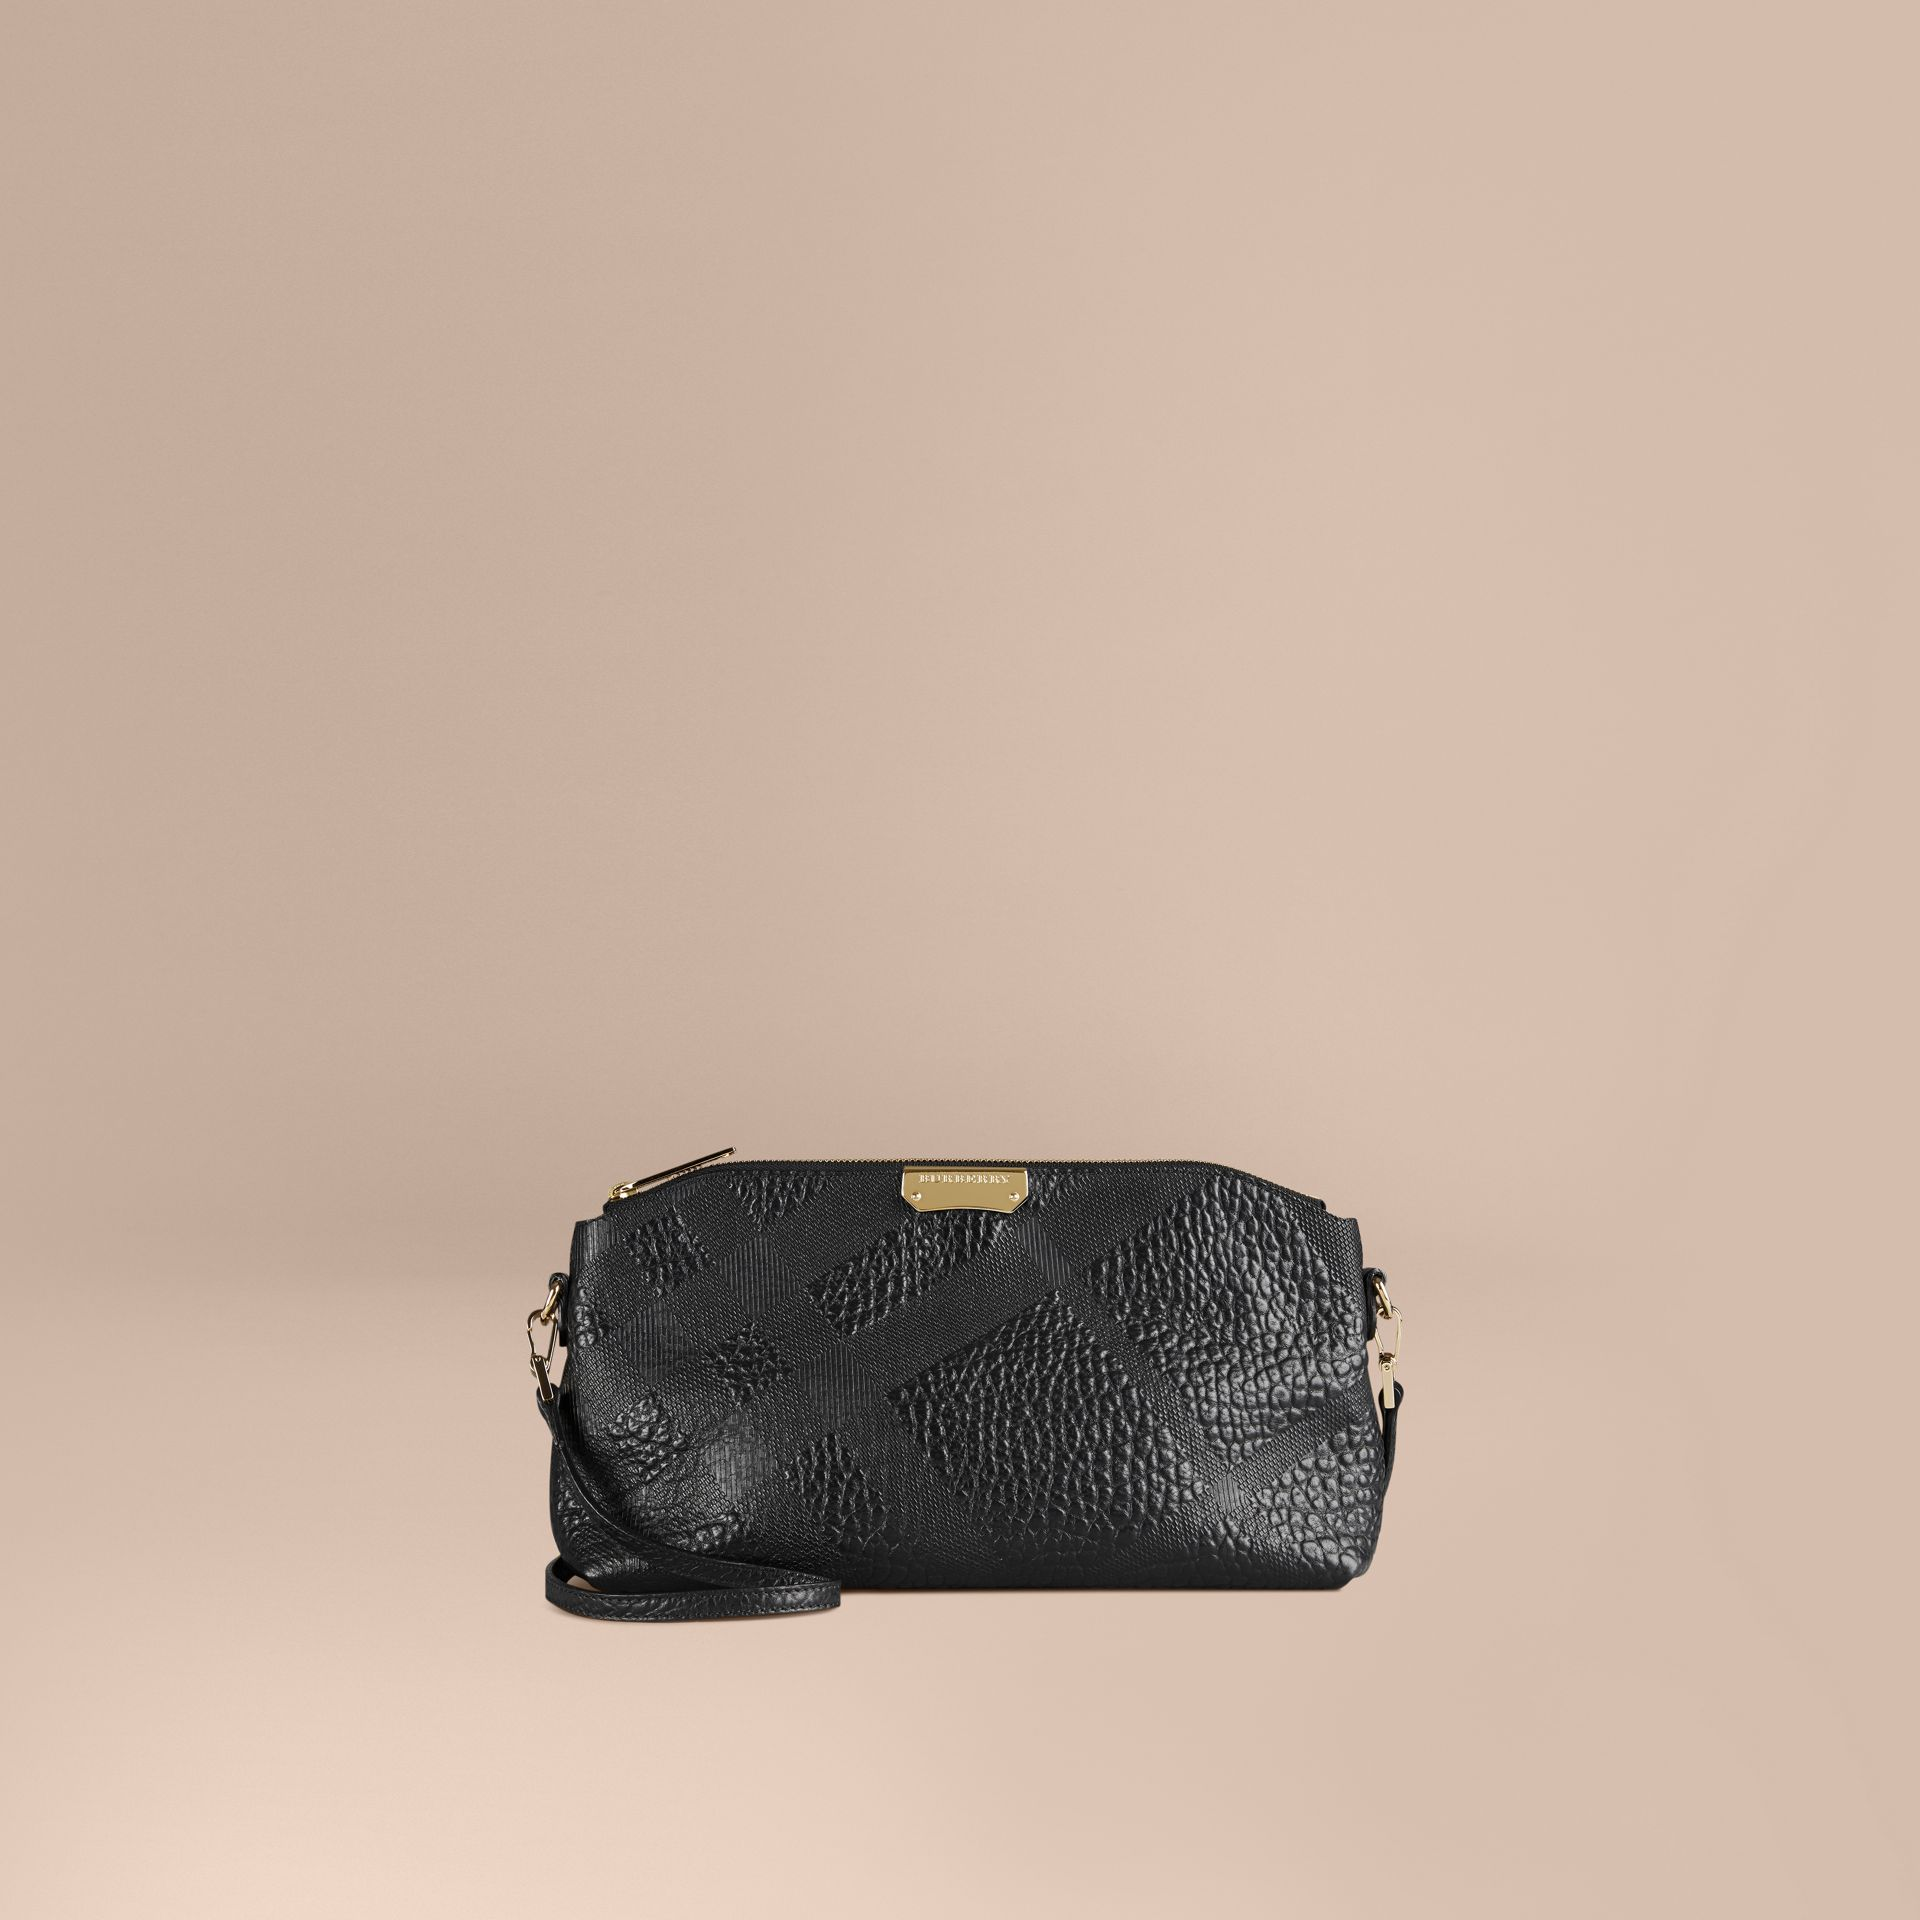 Small Embossed Check Leather Clutch Bag in Black - gallery image 1